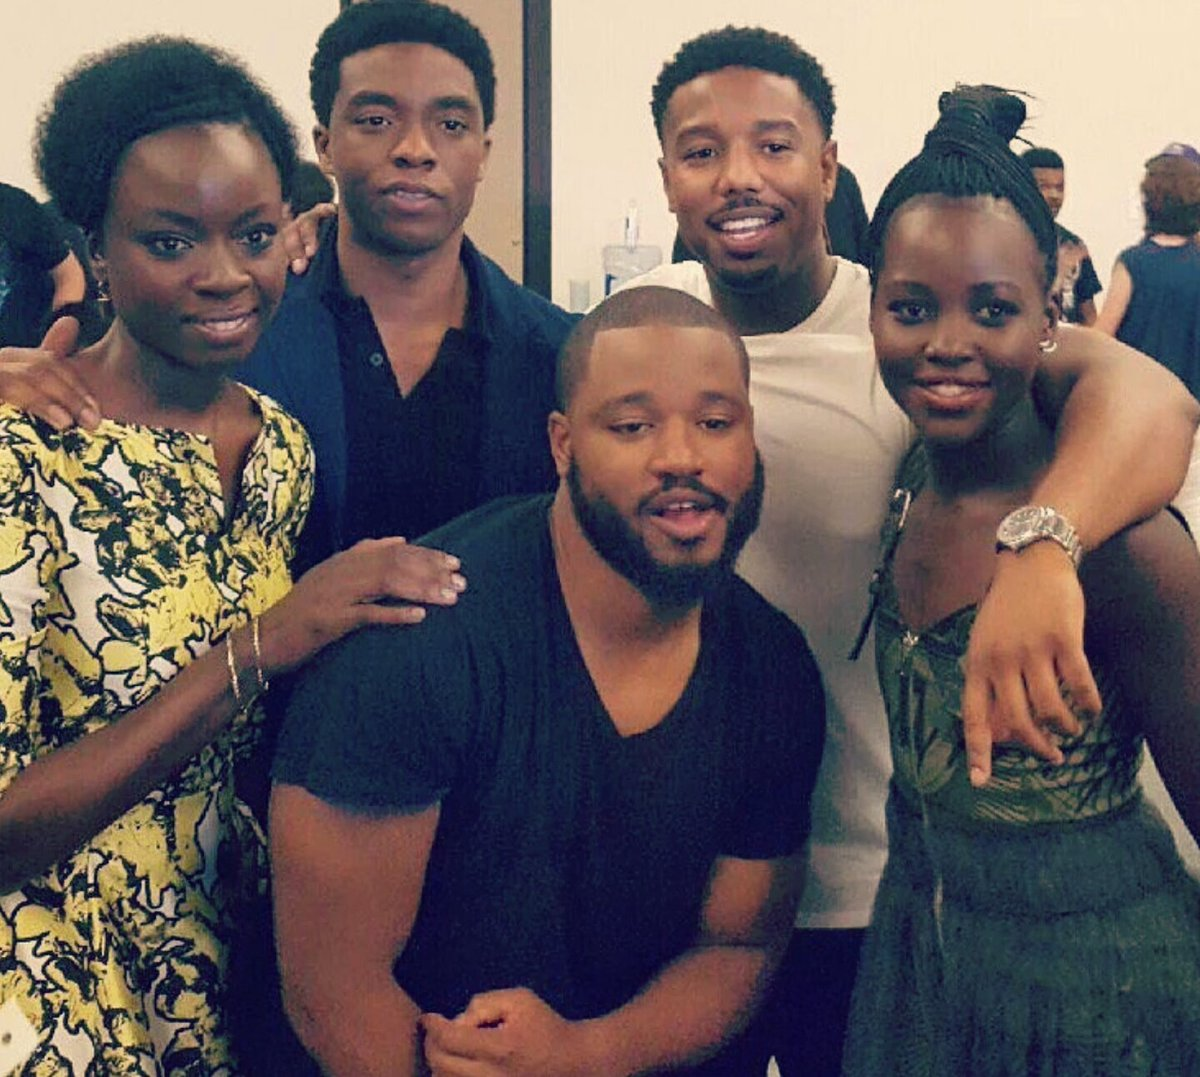 Pause what you're doing to drink in the impact these folks'll have on kids moment film's released/#BlackPantherSoLIT https://t.co/2Fj25zqTev